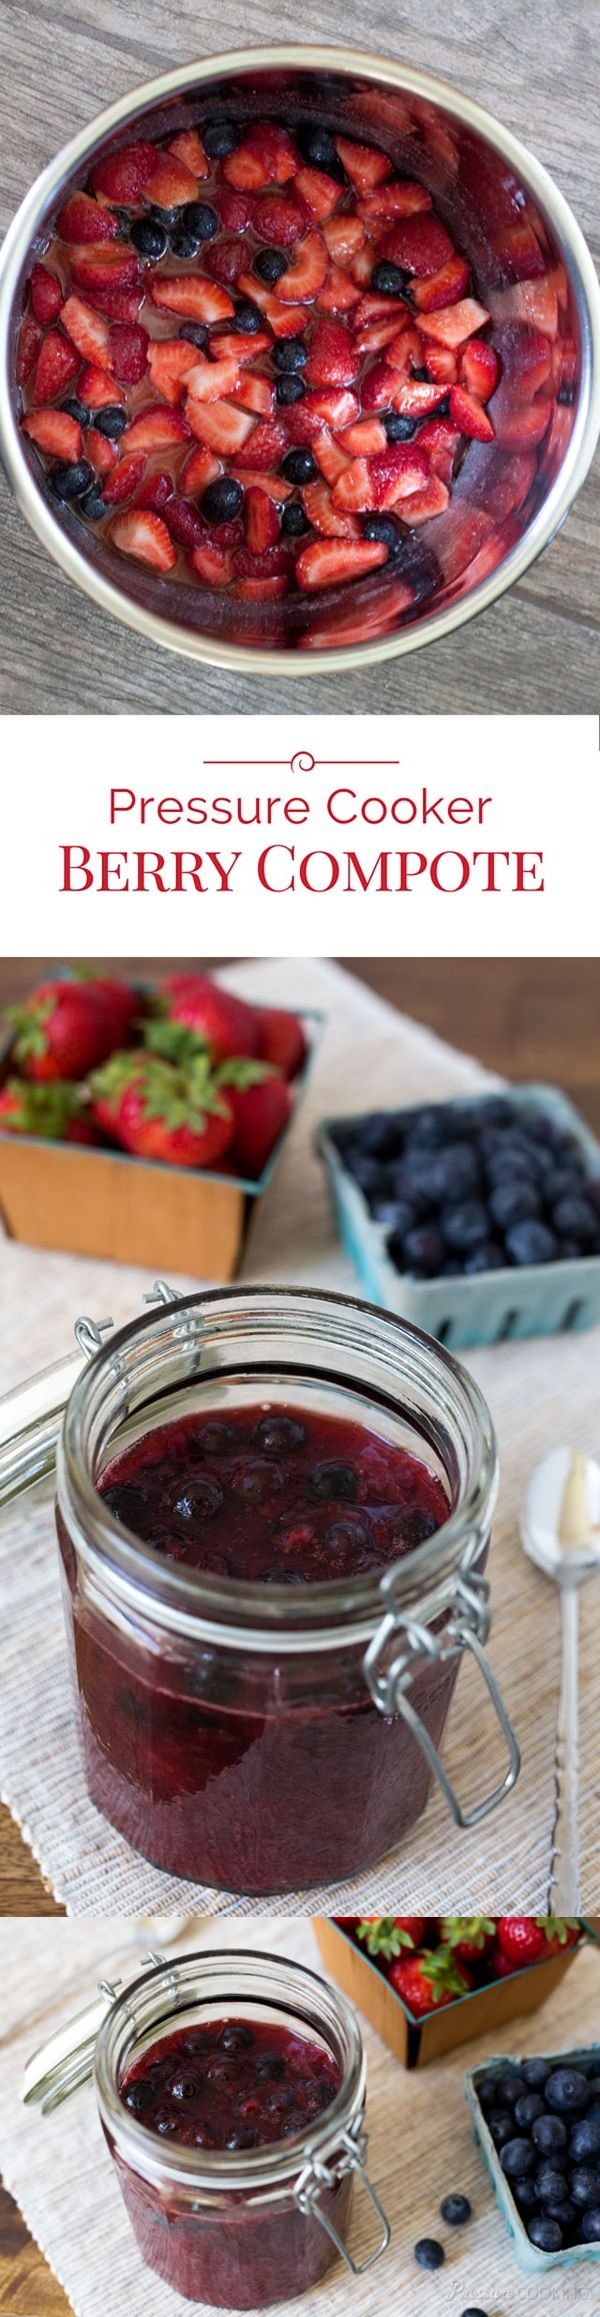 Pressure Cooker Berry Compote